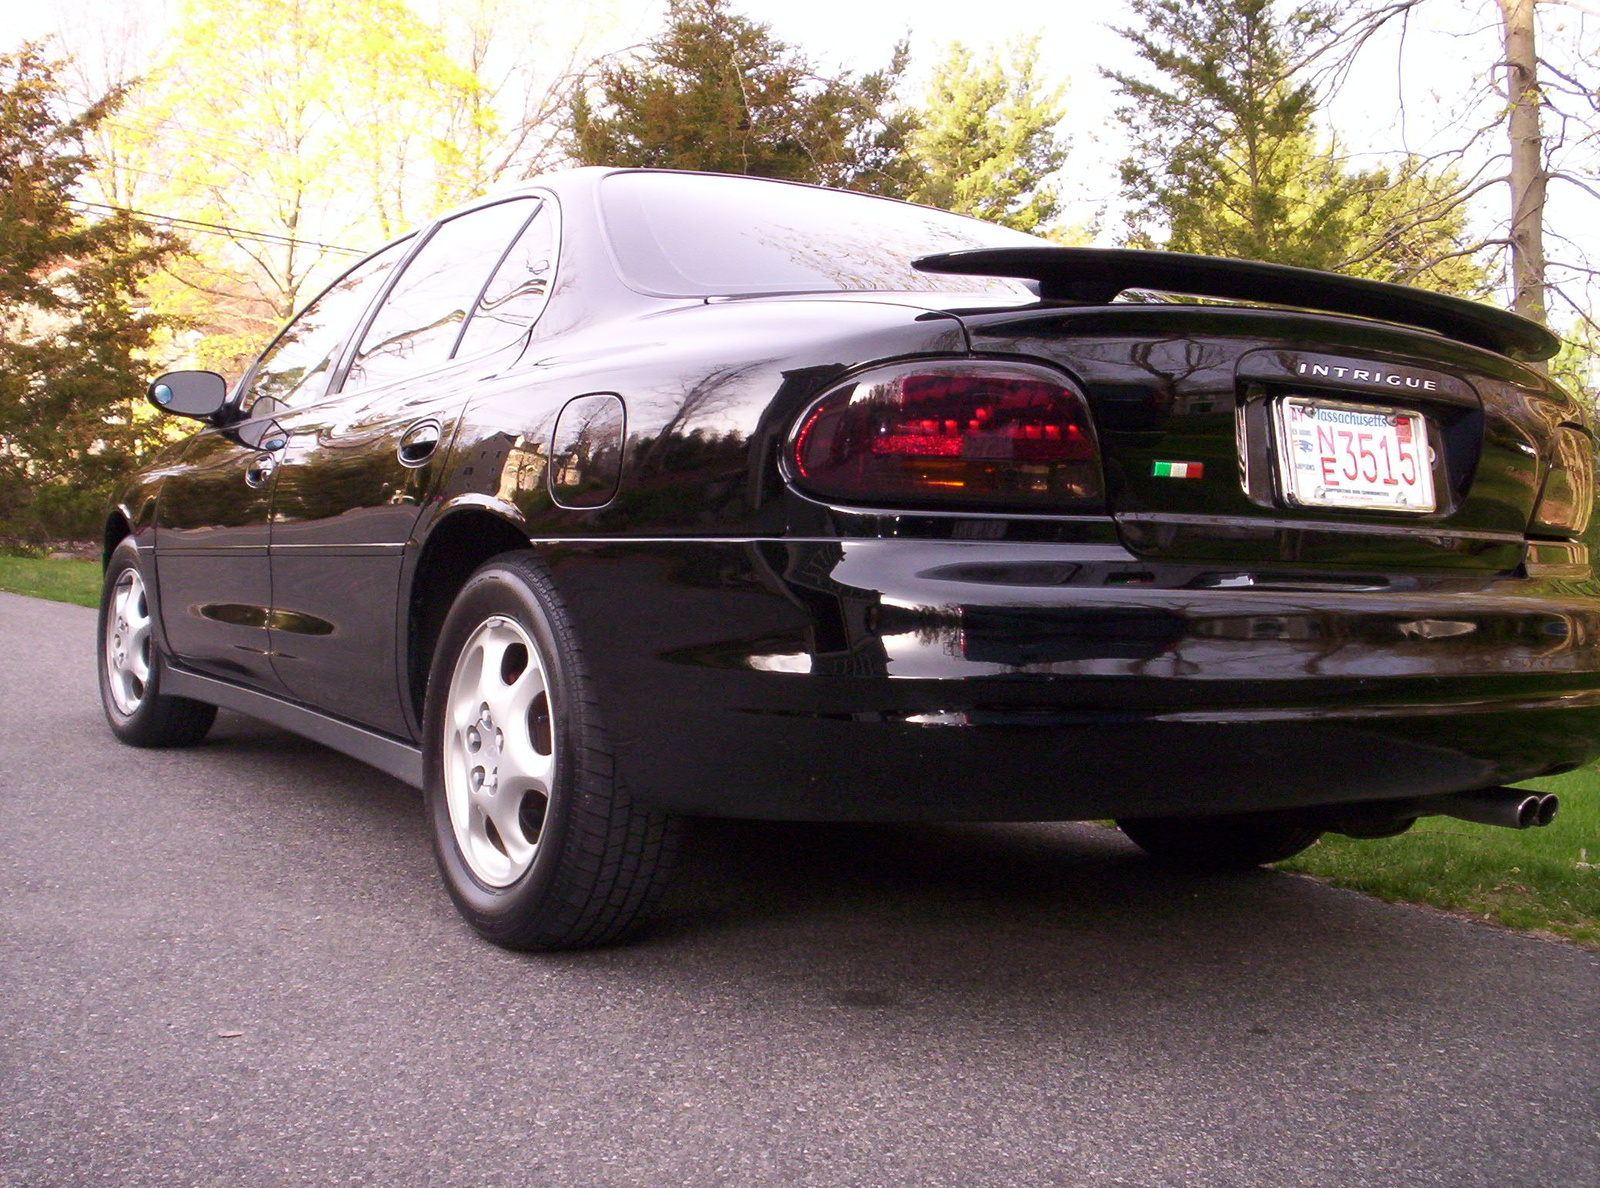 1999 Oldsmobile Intrigue Gx Photo 3